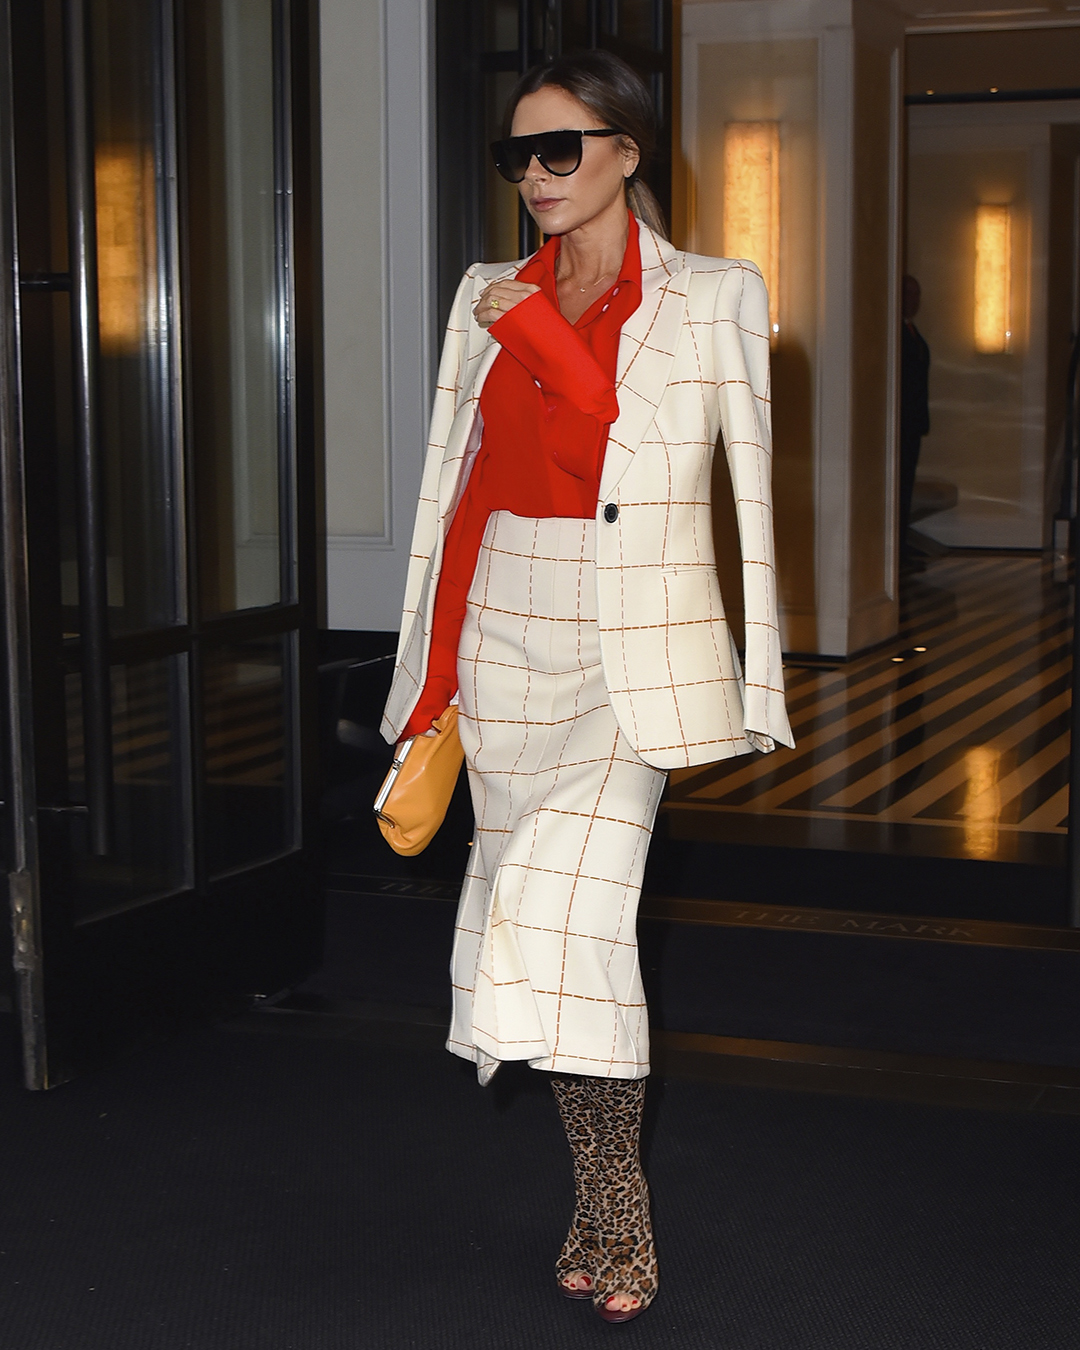 Victoria Beckham best dressed